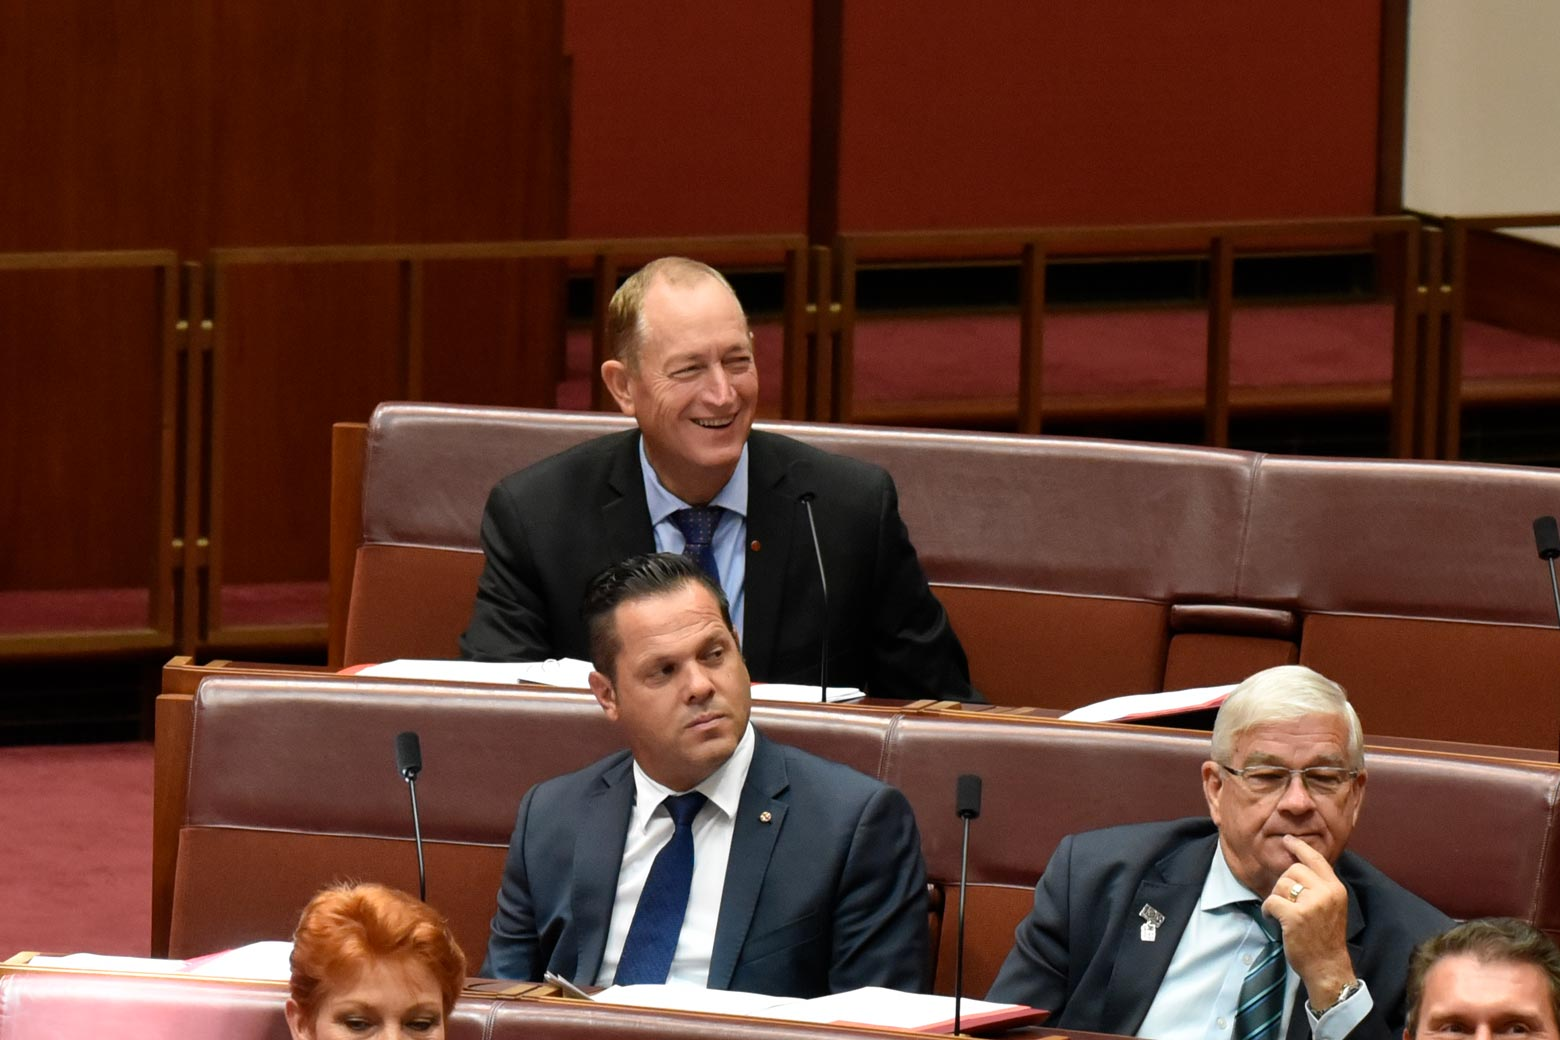 Fraser Anning and other senators sit in chairs in Parliament.